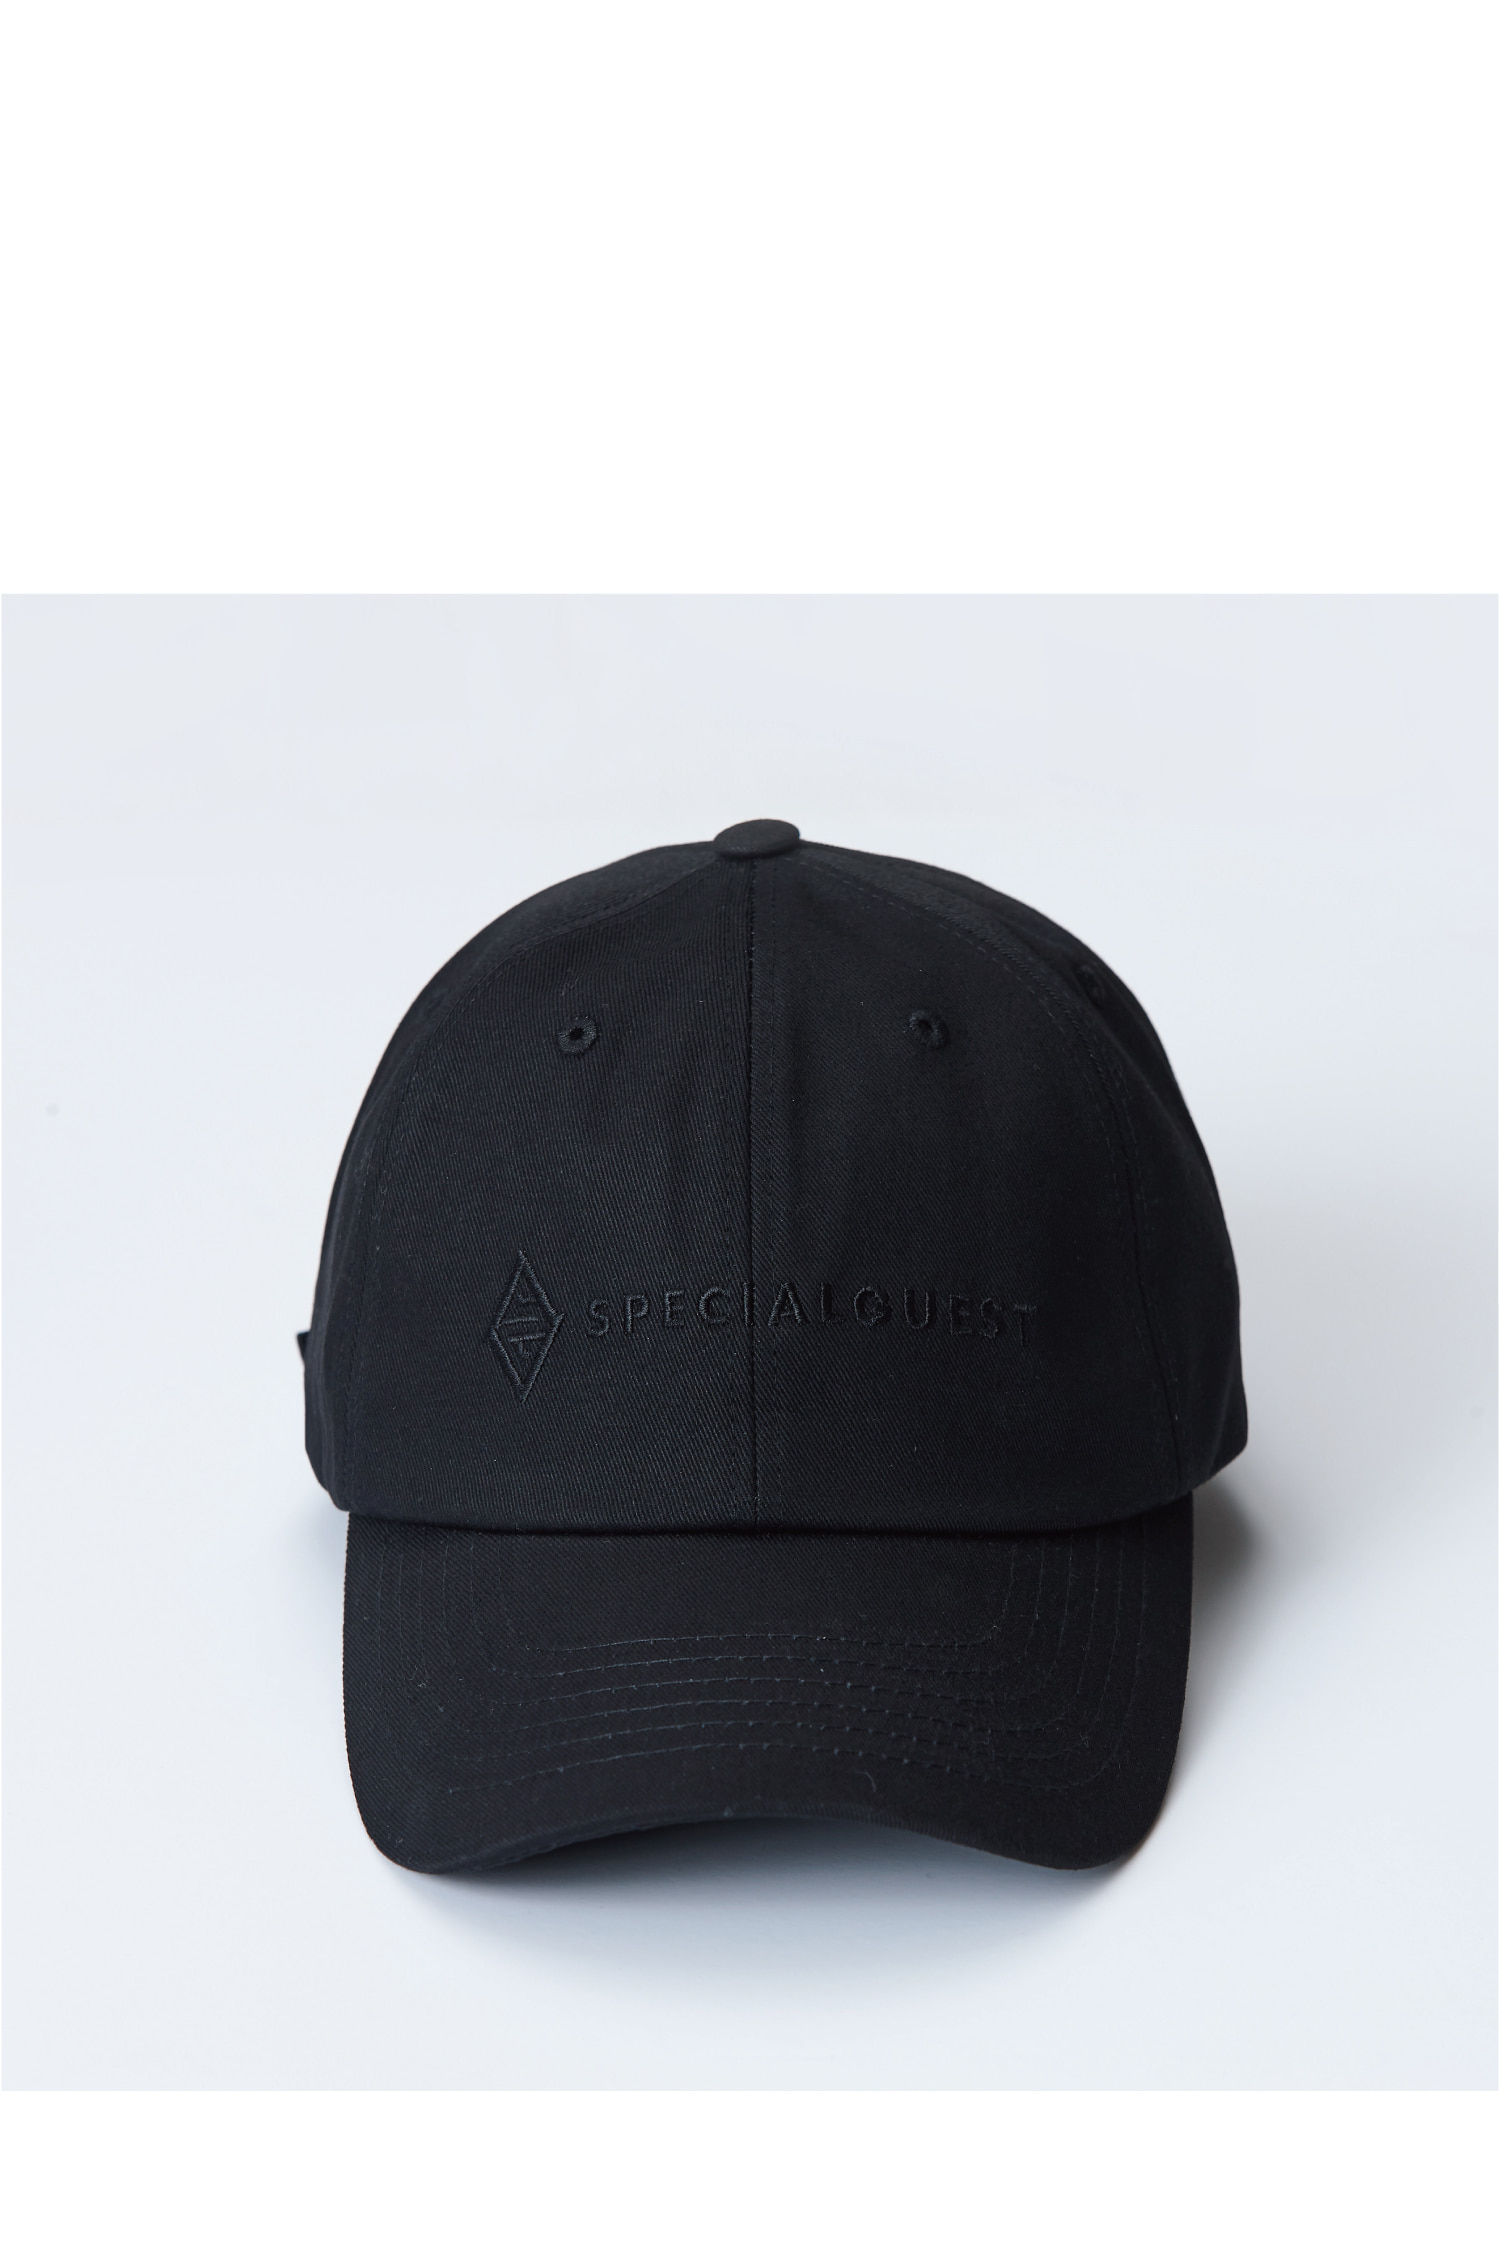 EASY BALLCAP BLACK